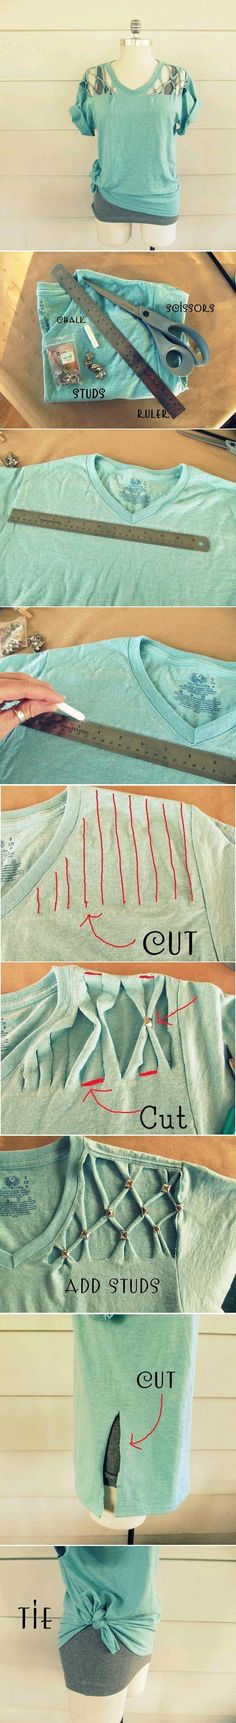 Cool studded t #shirt #creative